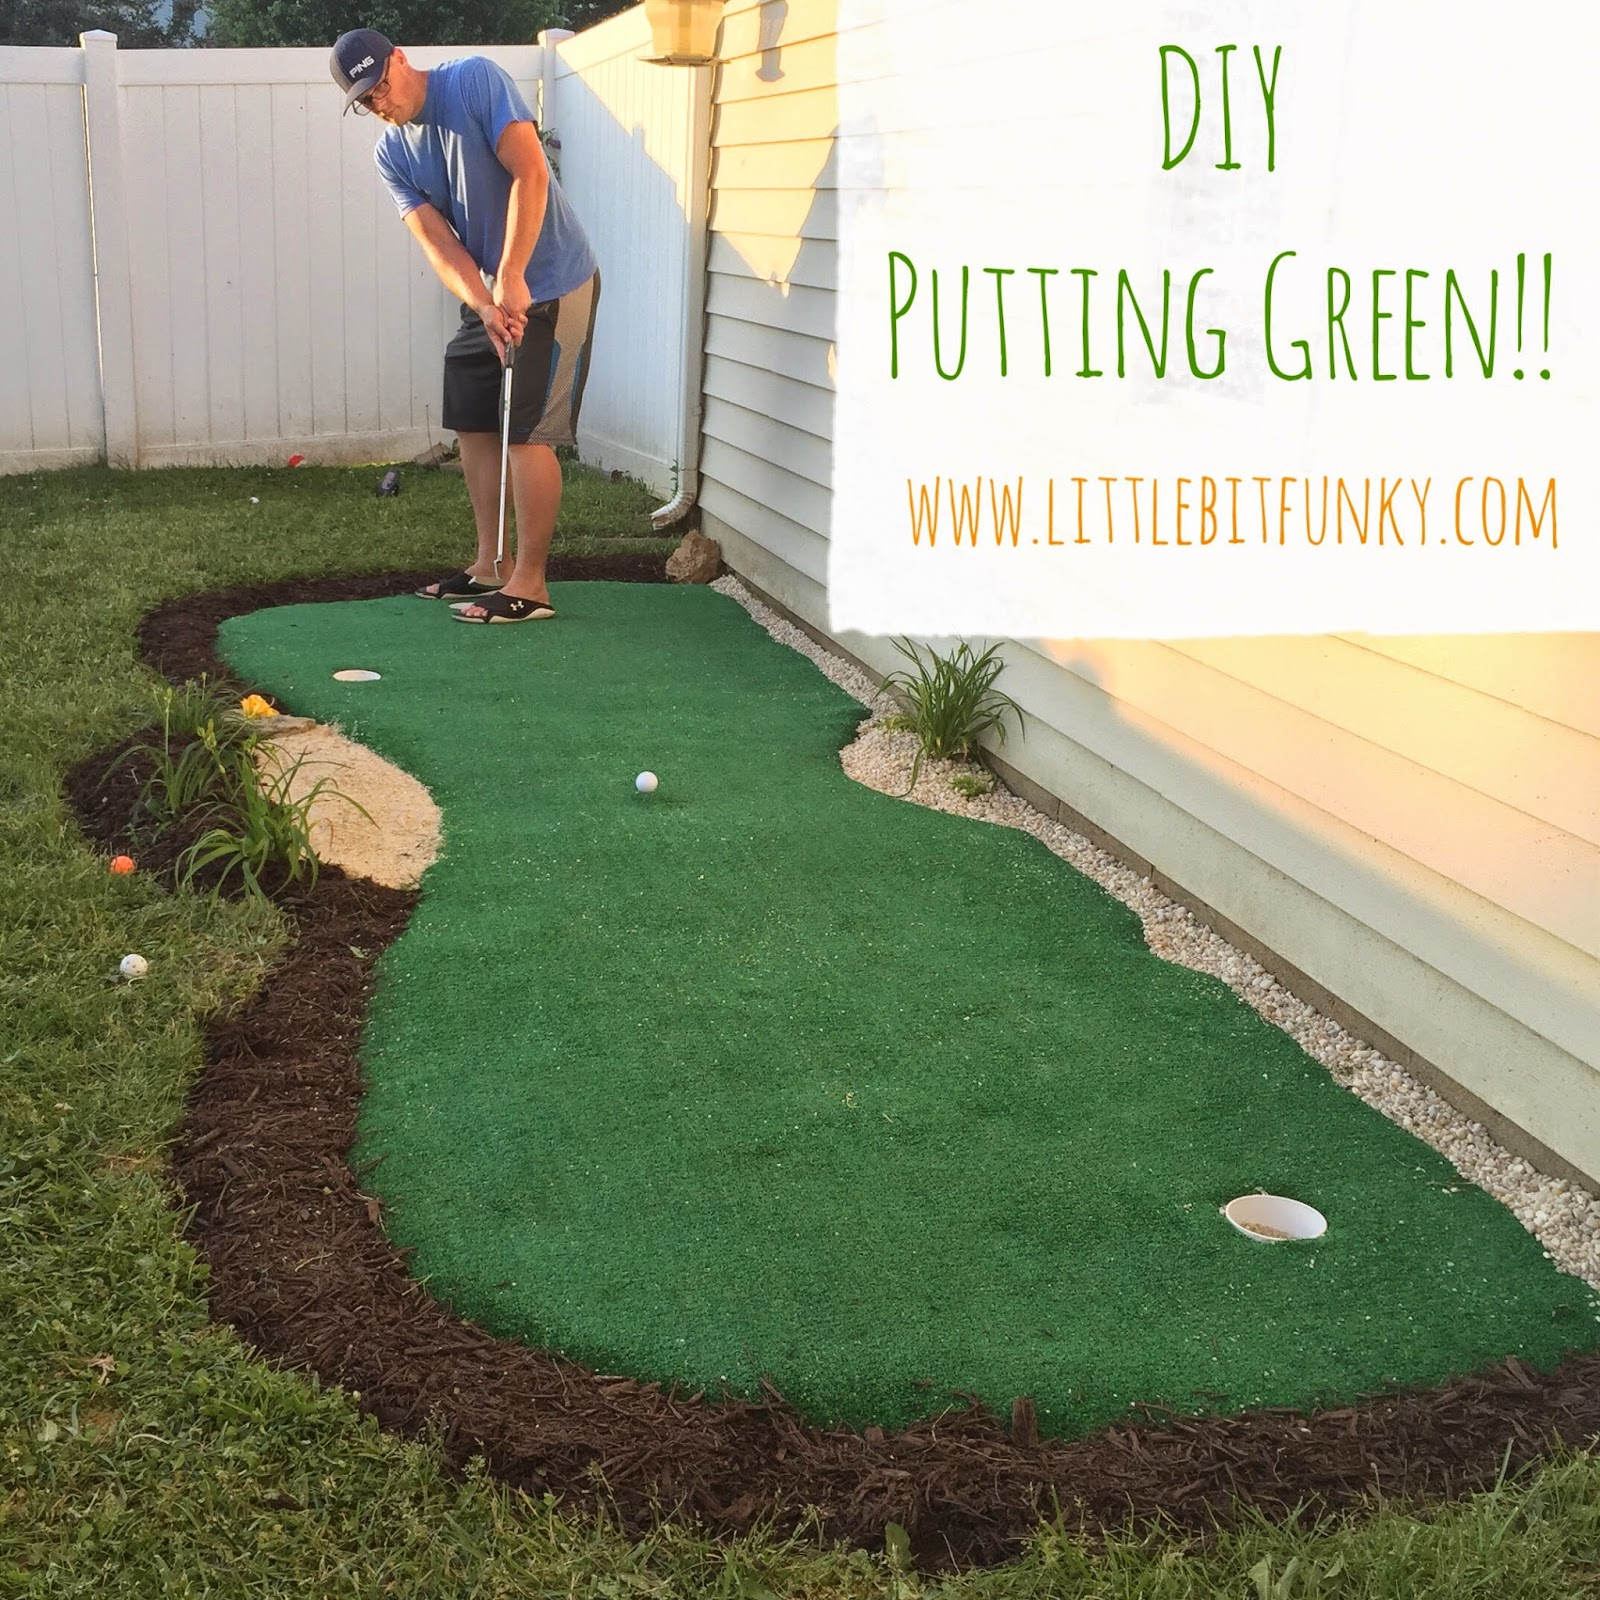 Little Bit Funky: How to make a backyard putting green